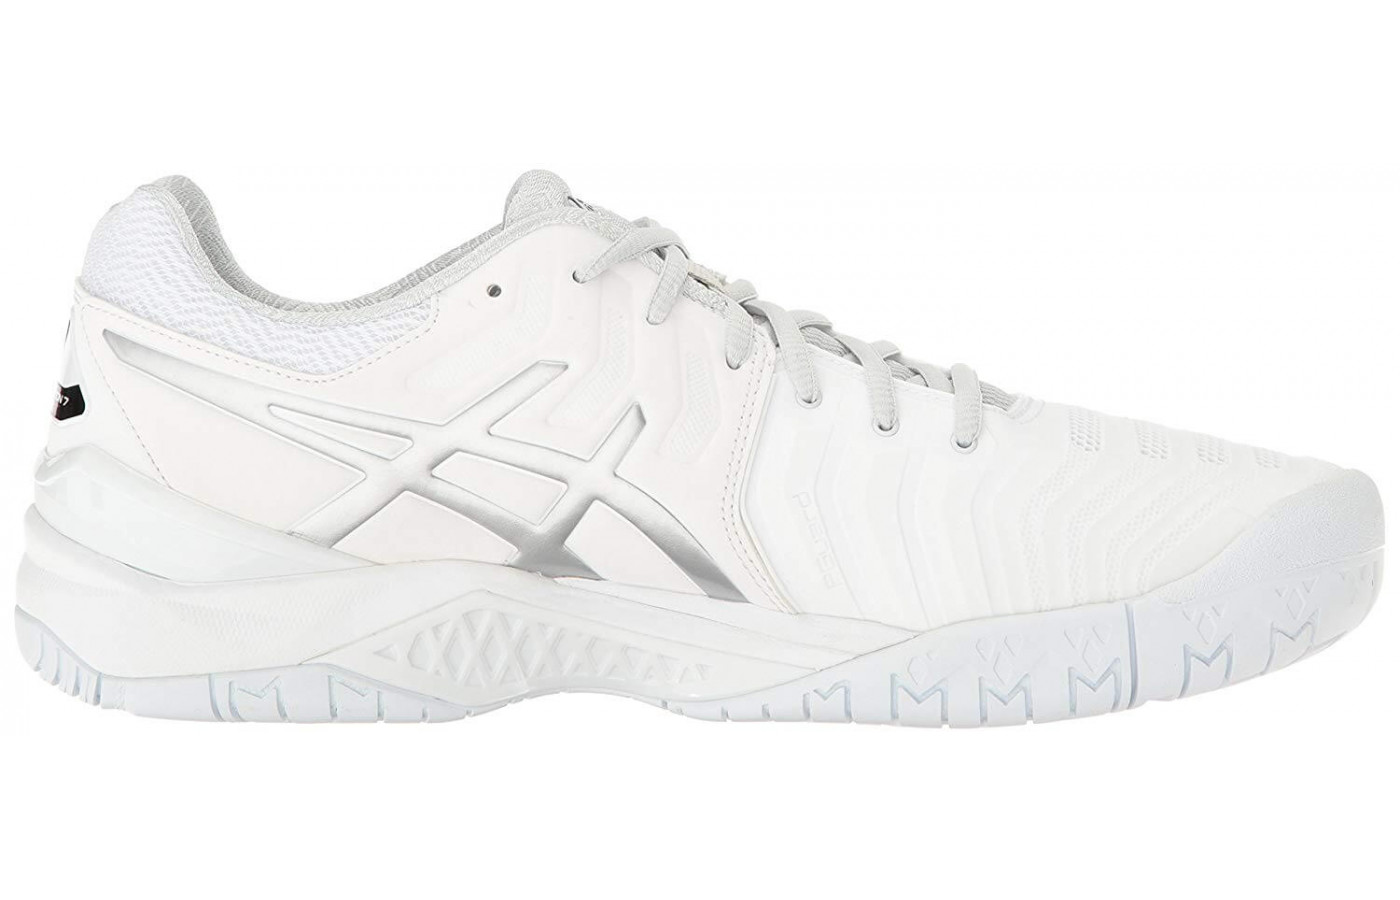 Asics Gel-Resolution 7 side